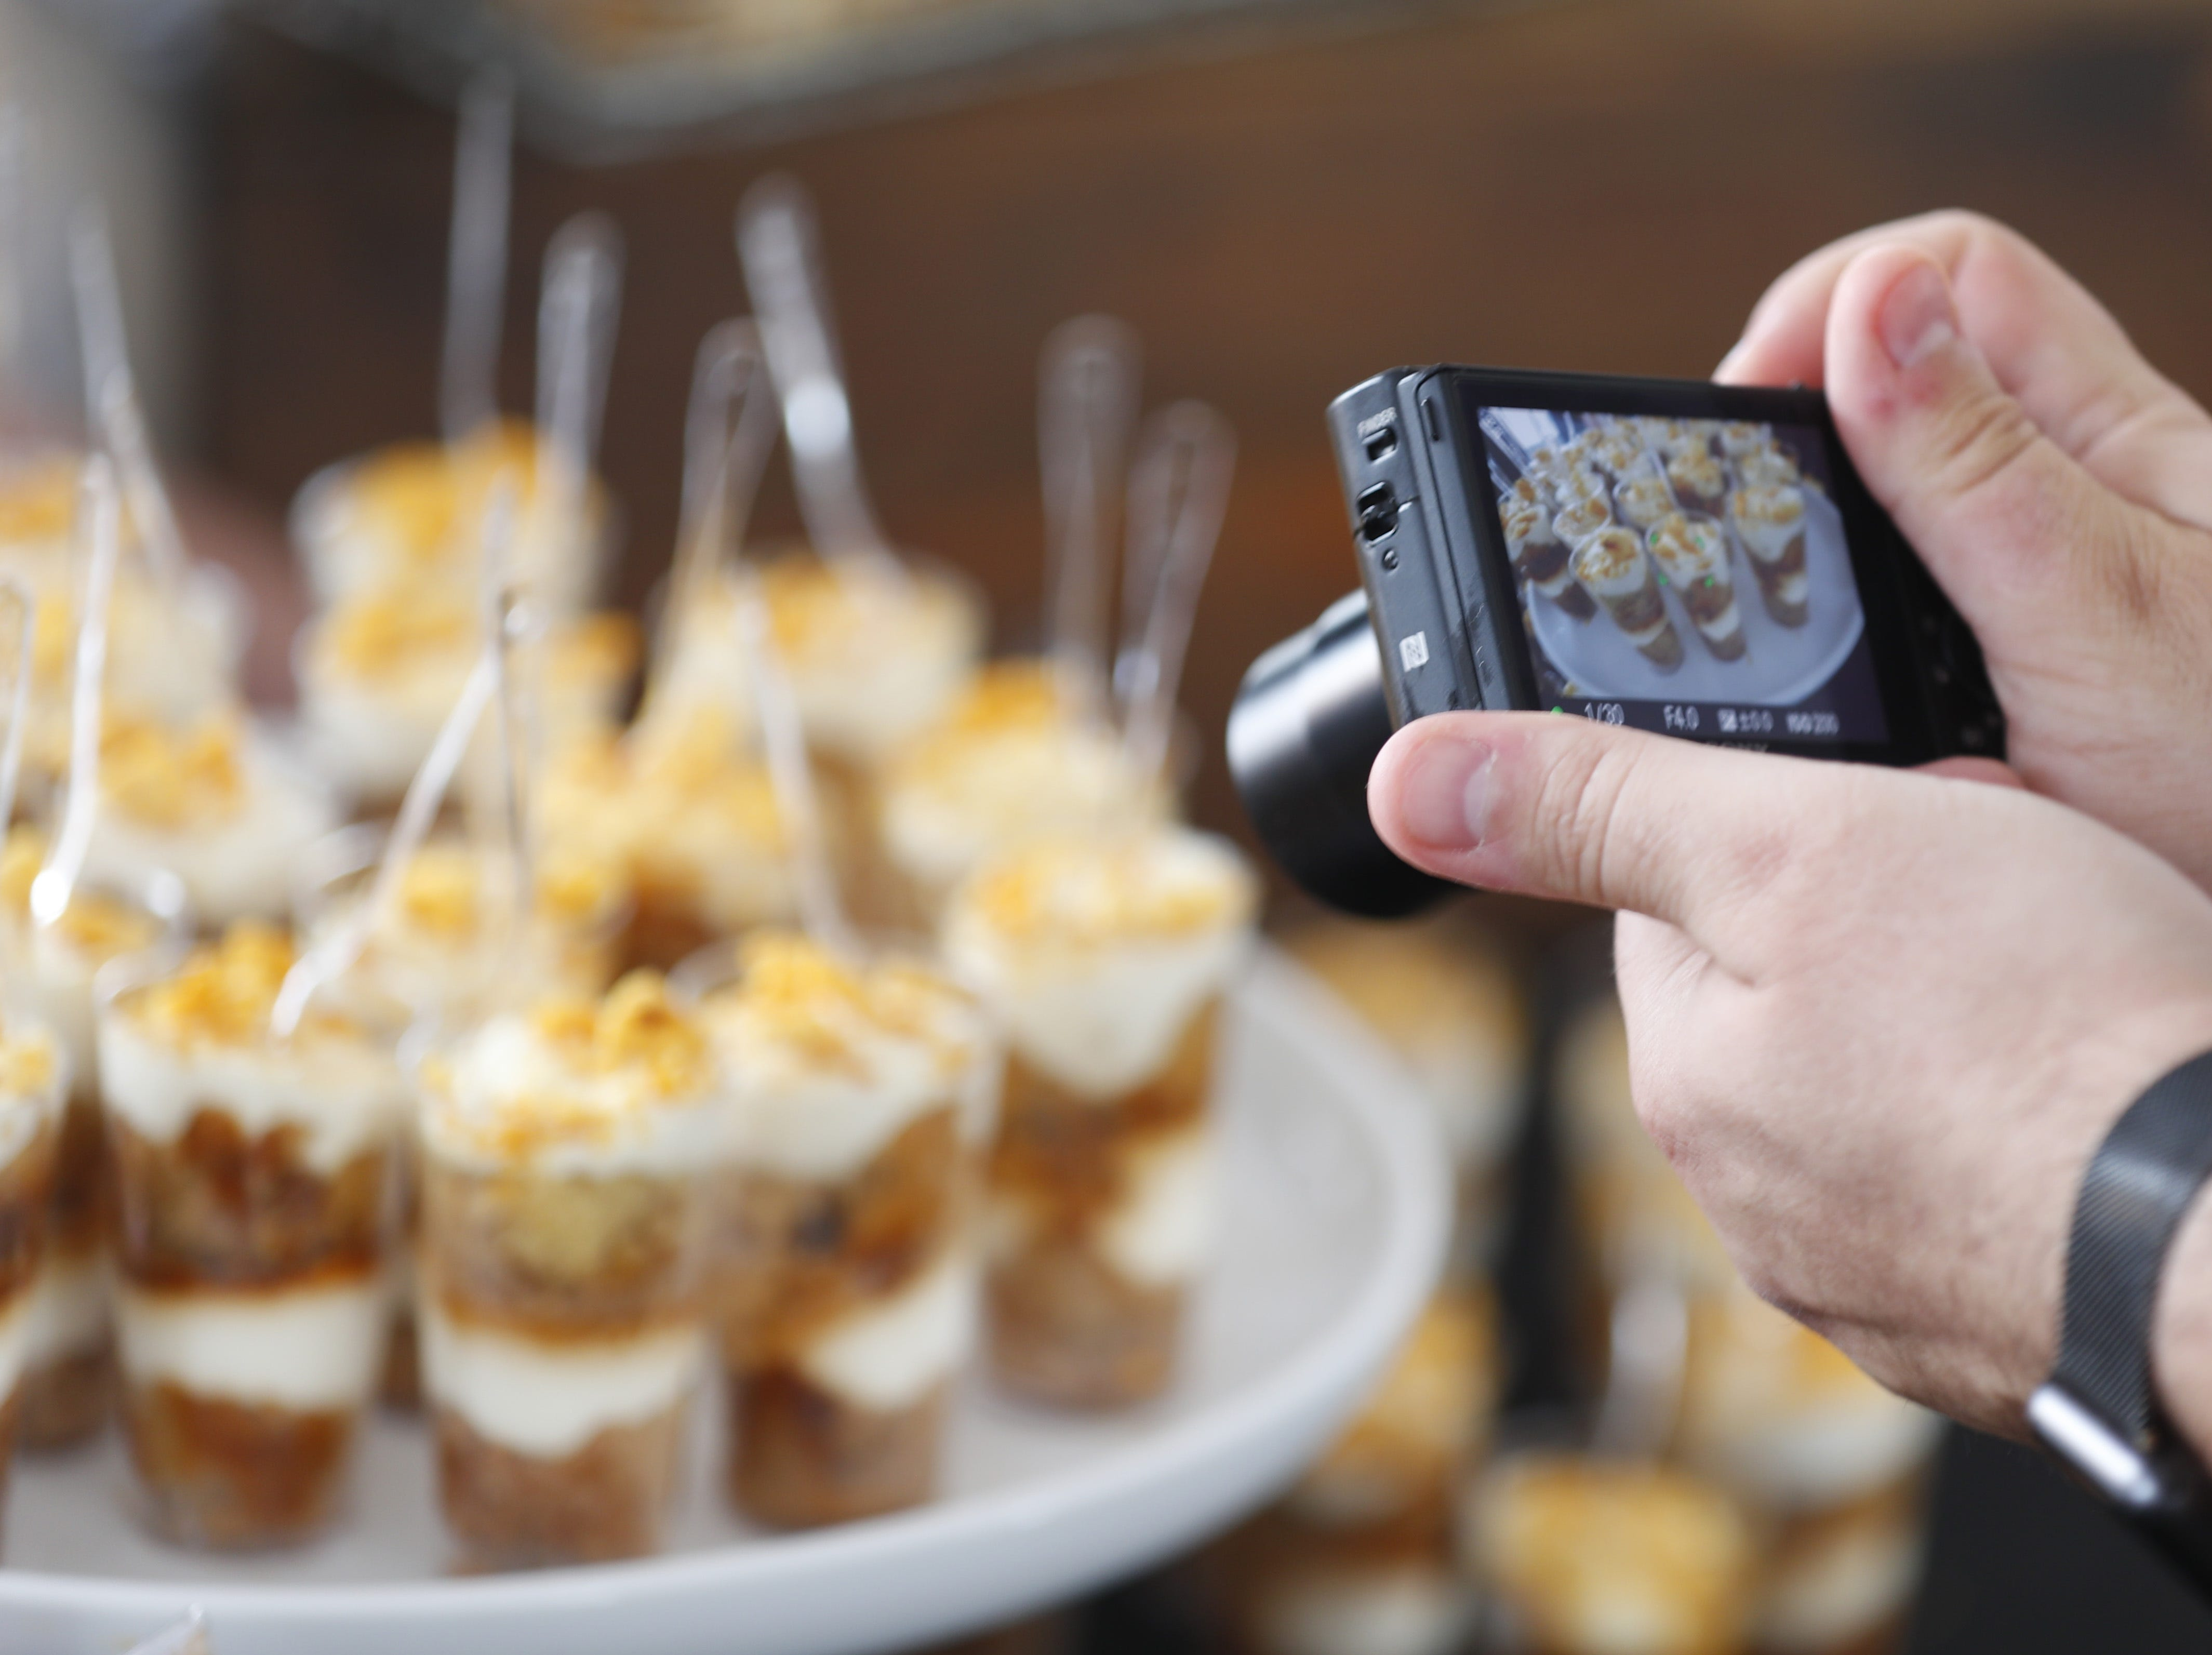 Arizona Republic food critic Dominic Armato takes a photo of Super Chunk Sweets during the azcentral Wine & Food Experience at WestWorld of Scottsdale, Ariz. on Nov. 4, 2018.